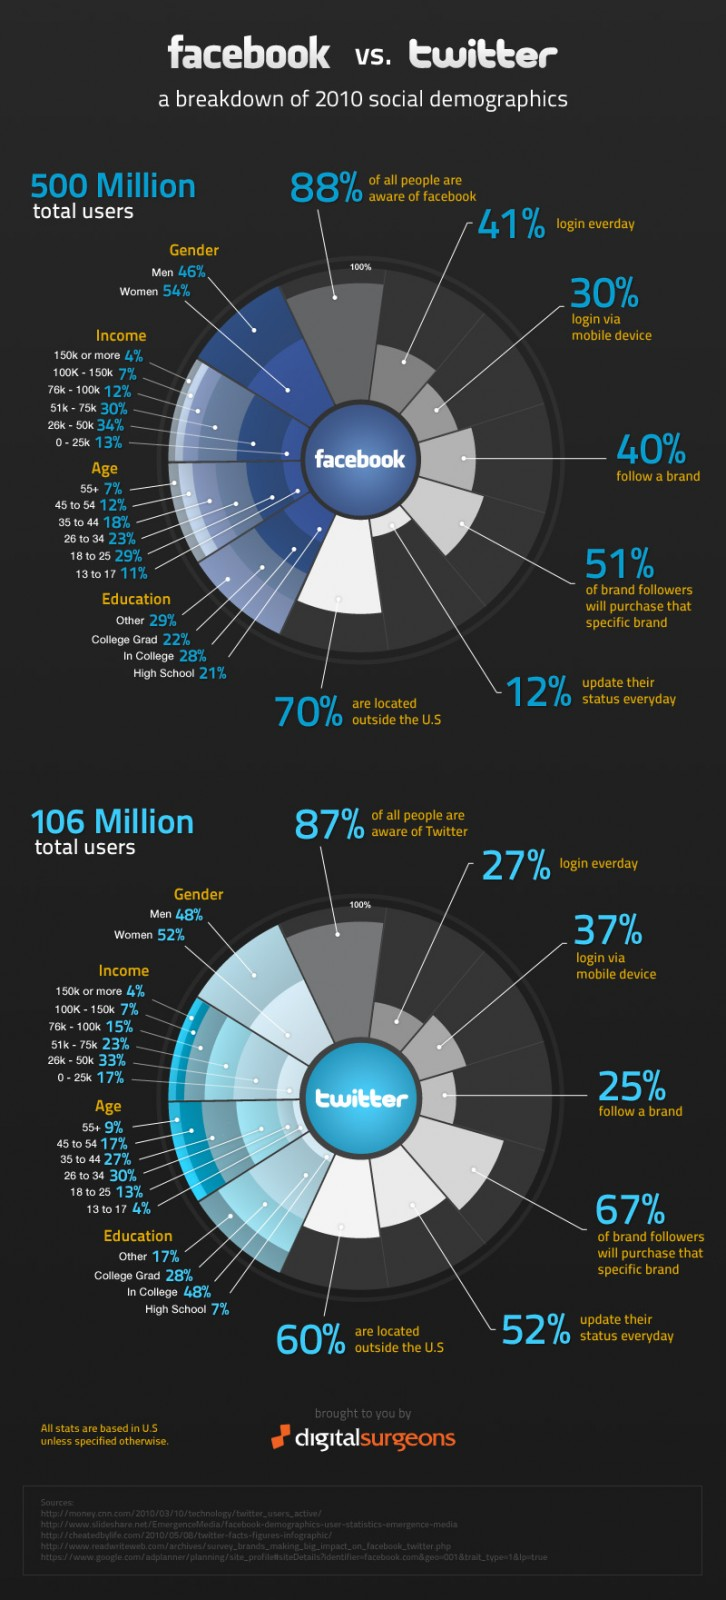 facbook vs. twitter infographic